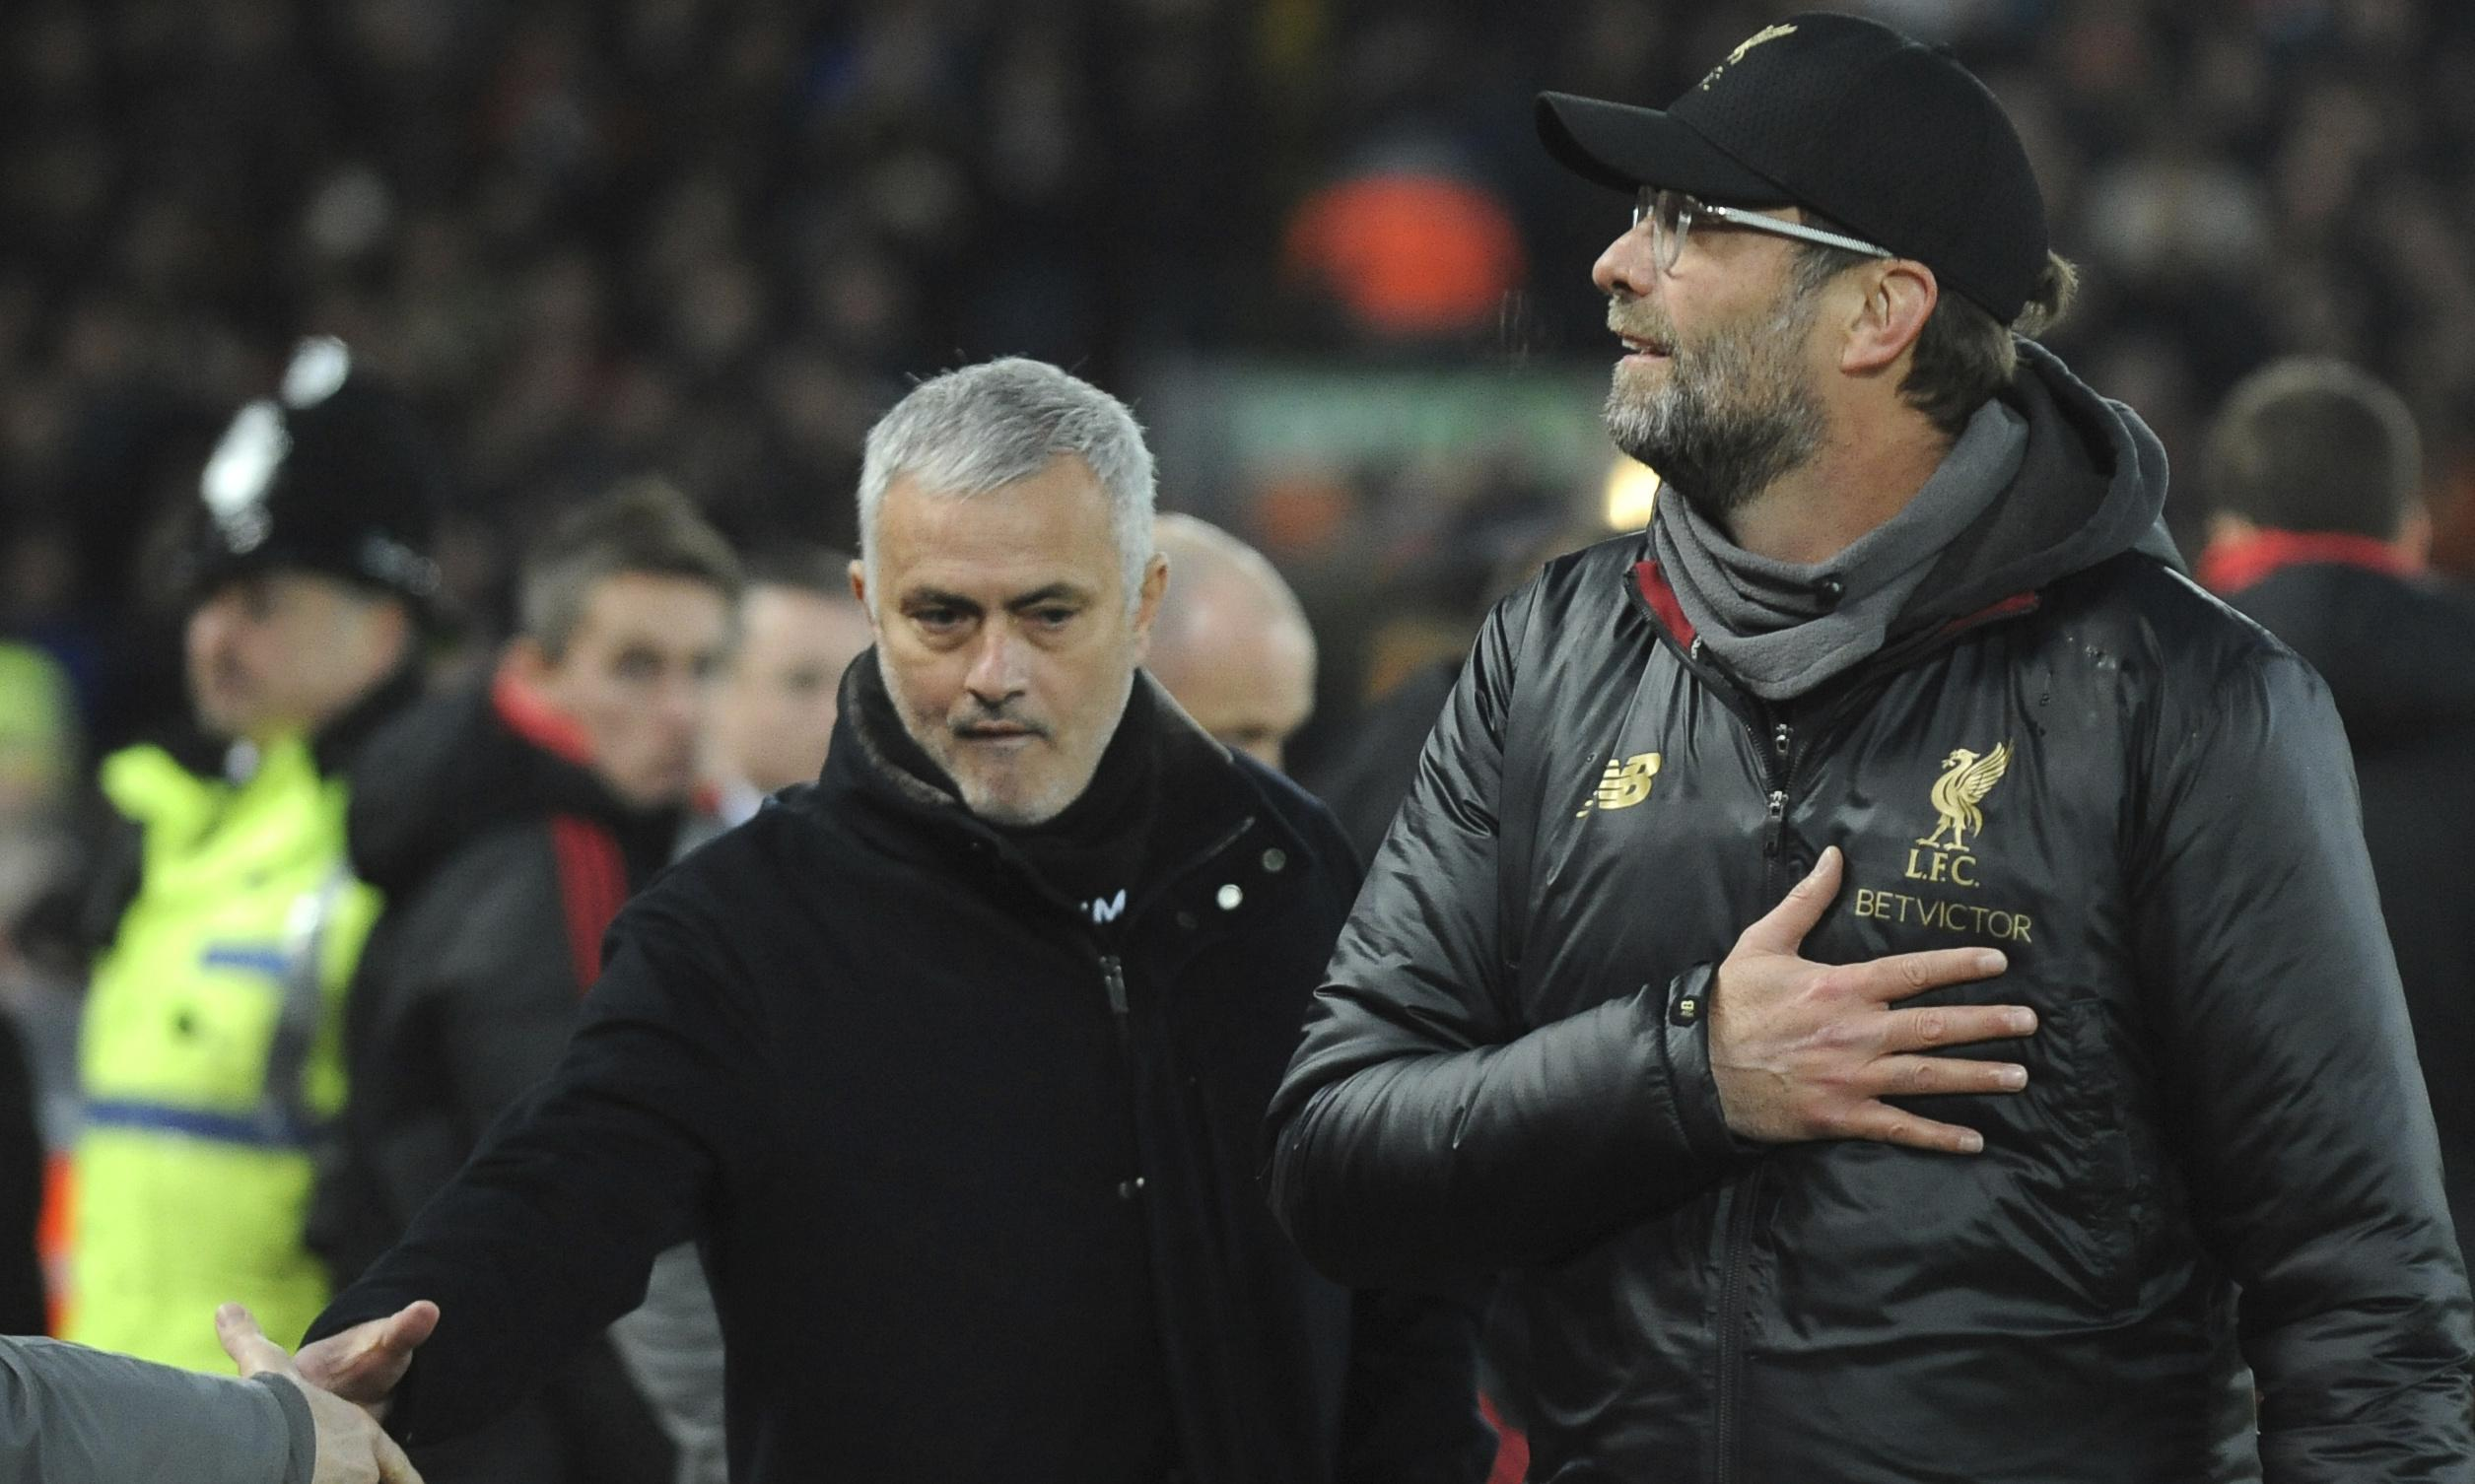 José Mourinho must take the consequences, says Jürgen Klopp